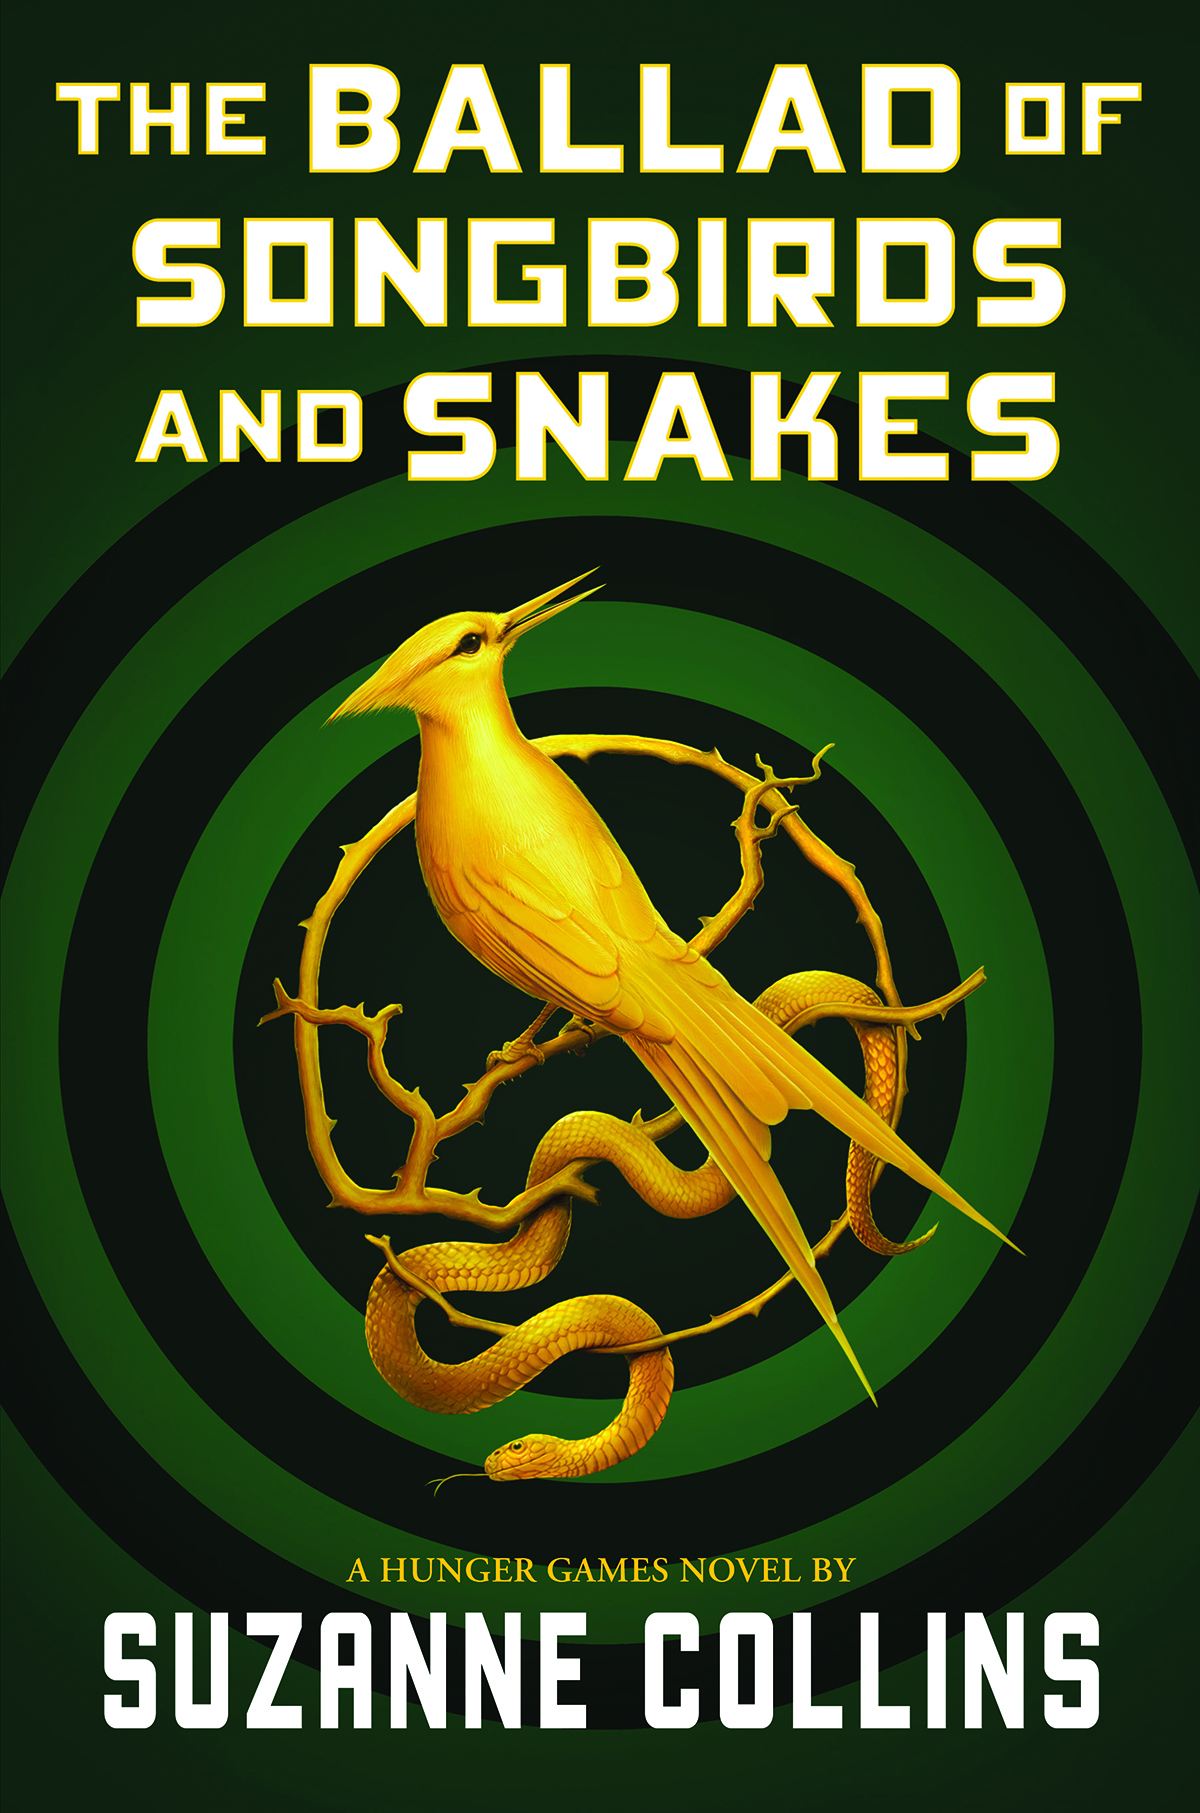 Mockingjay by Suzanne Collins – Book Review | Alvin's ... |The Hunger Games Mockingjay Book Cover